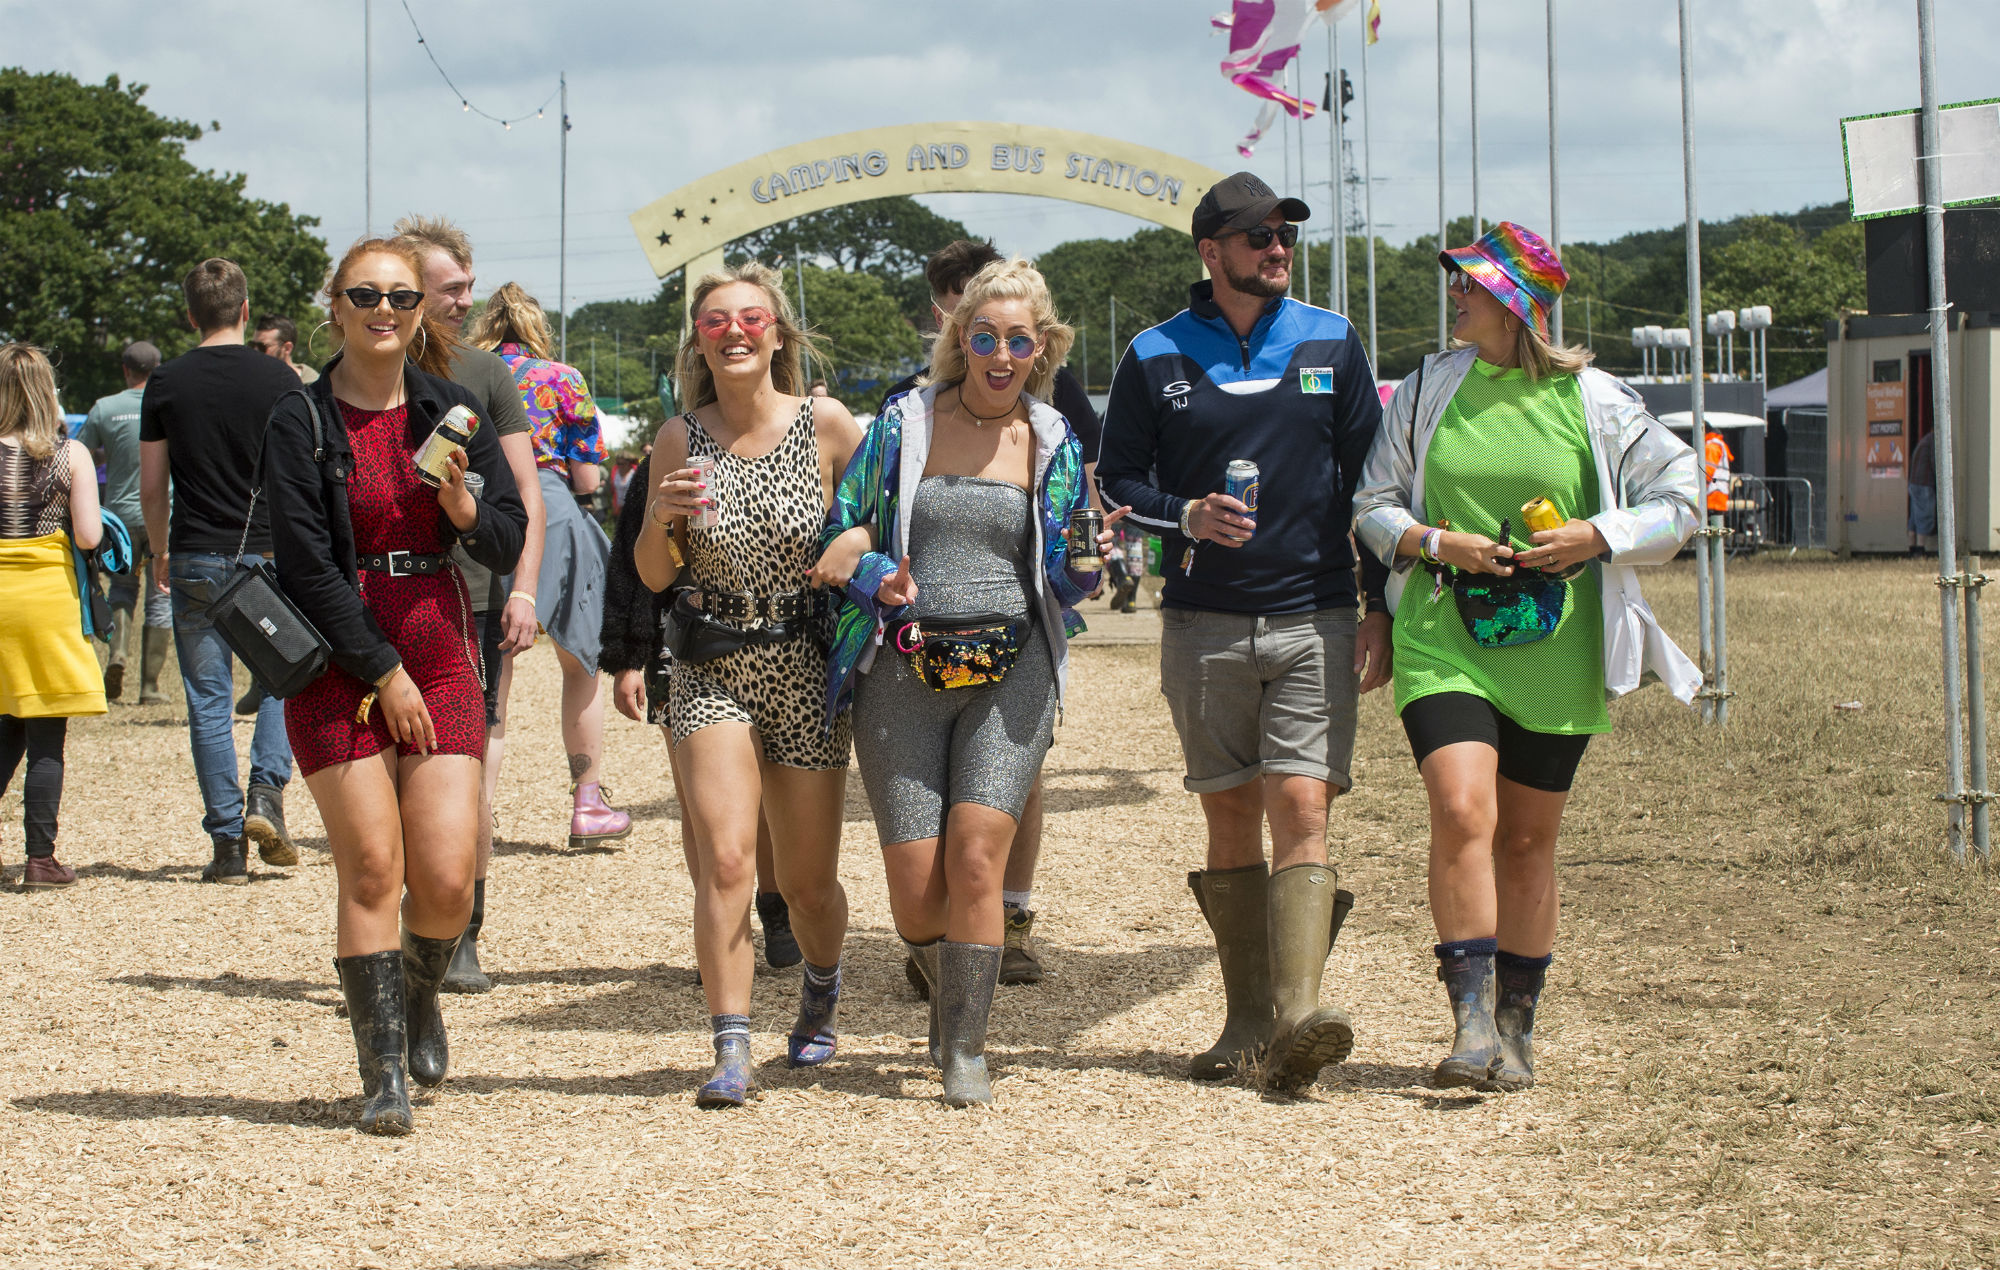 Weather Conditions Improve At The Isle Of Wight Festival